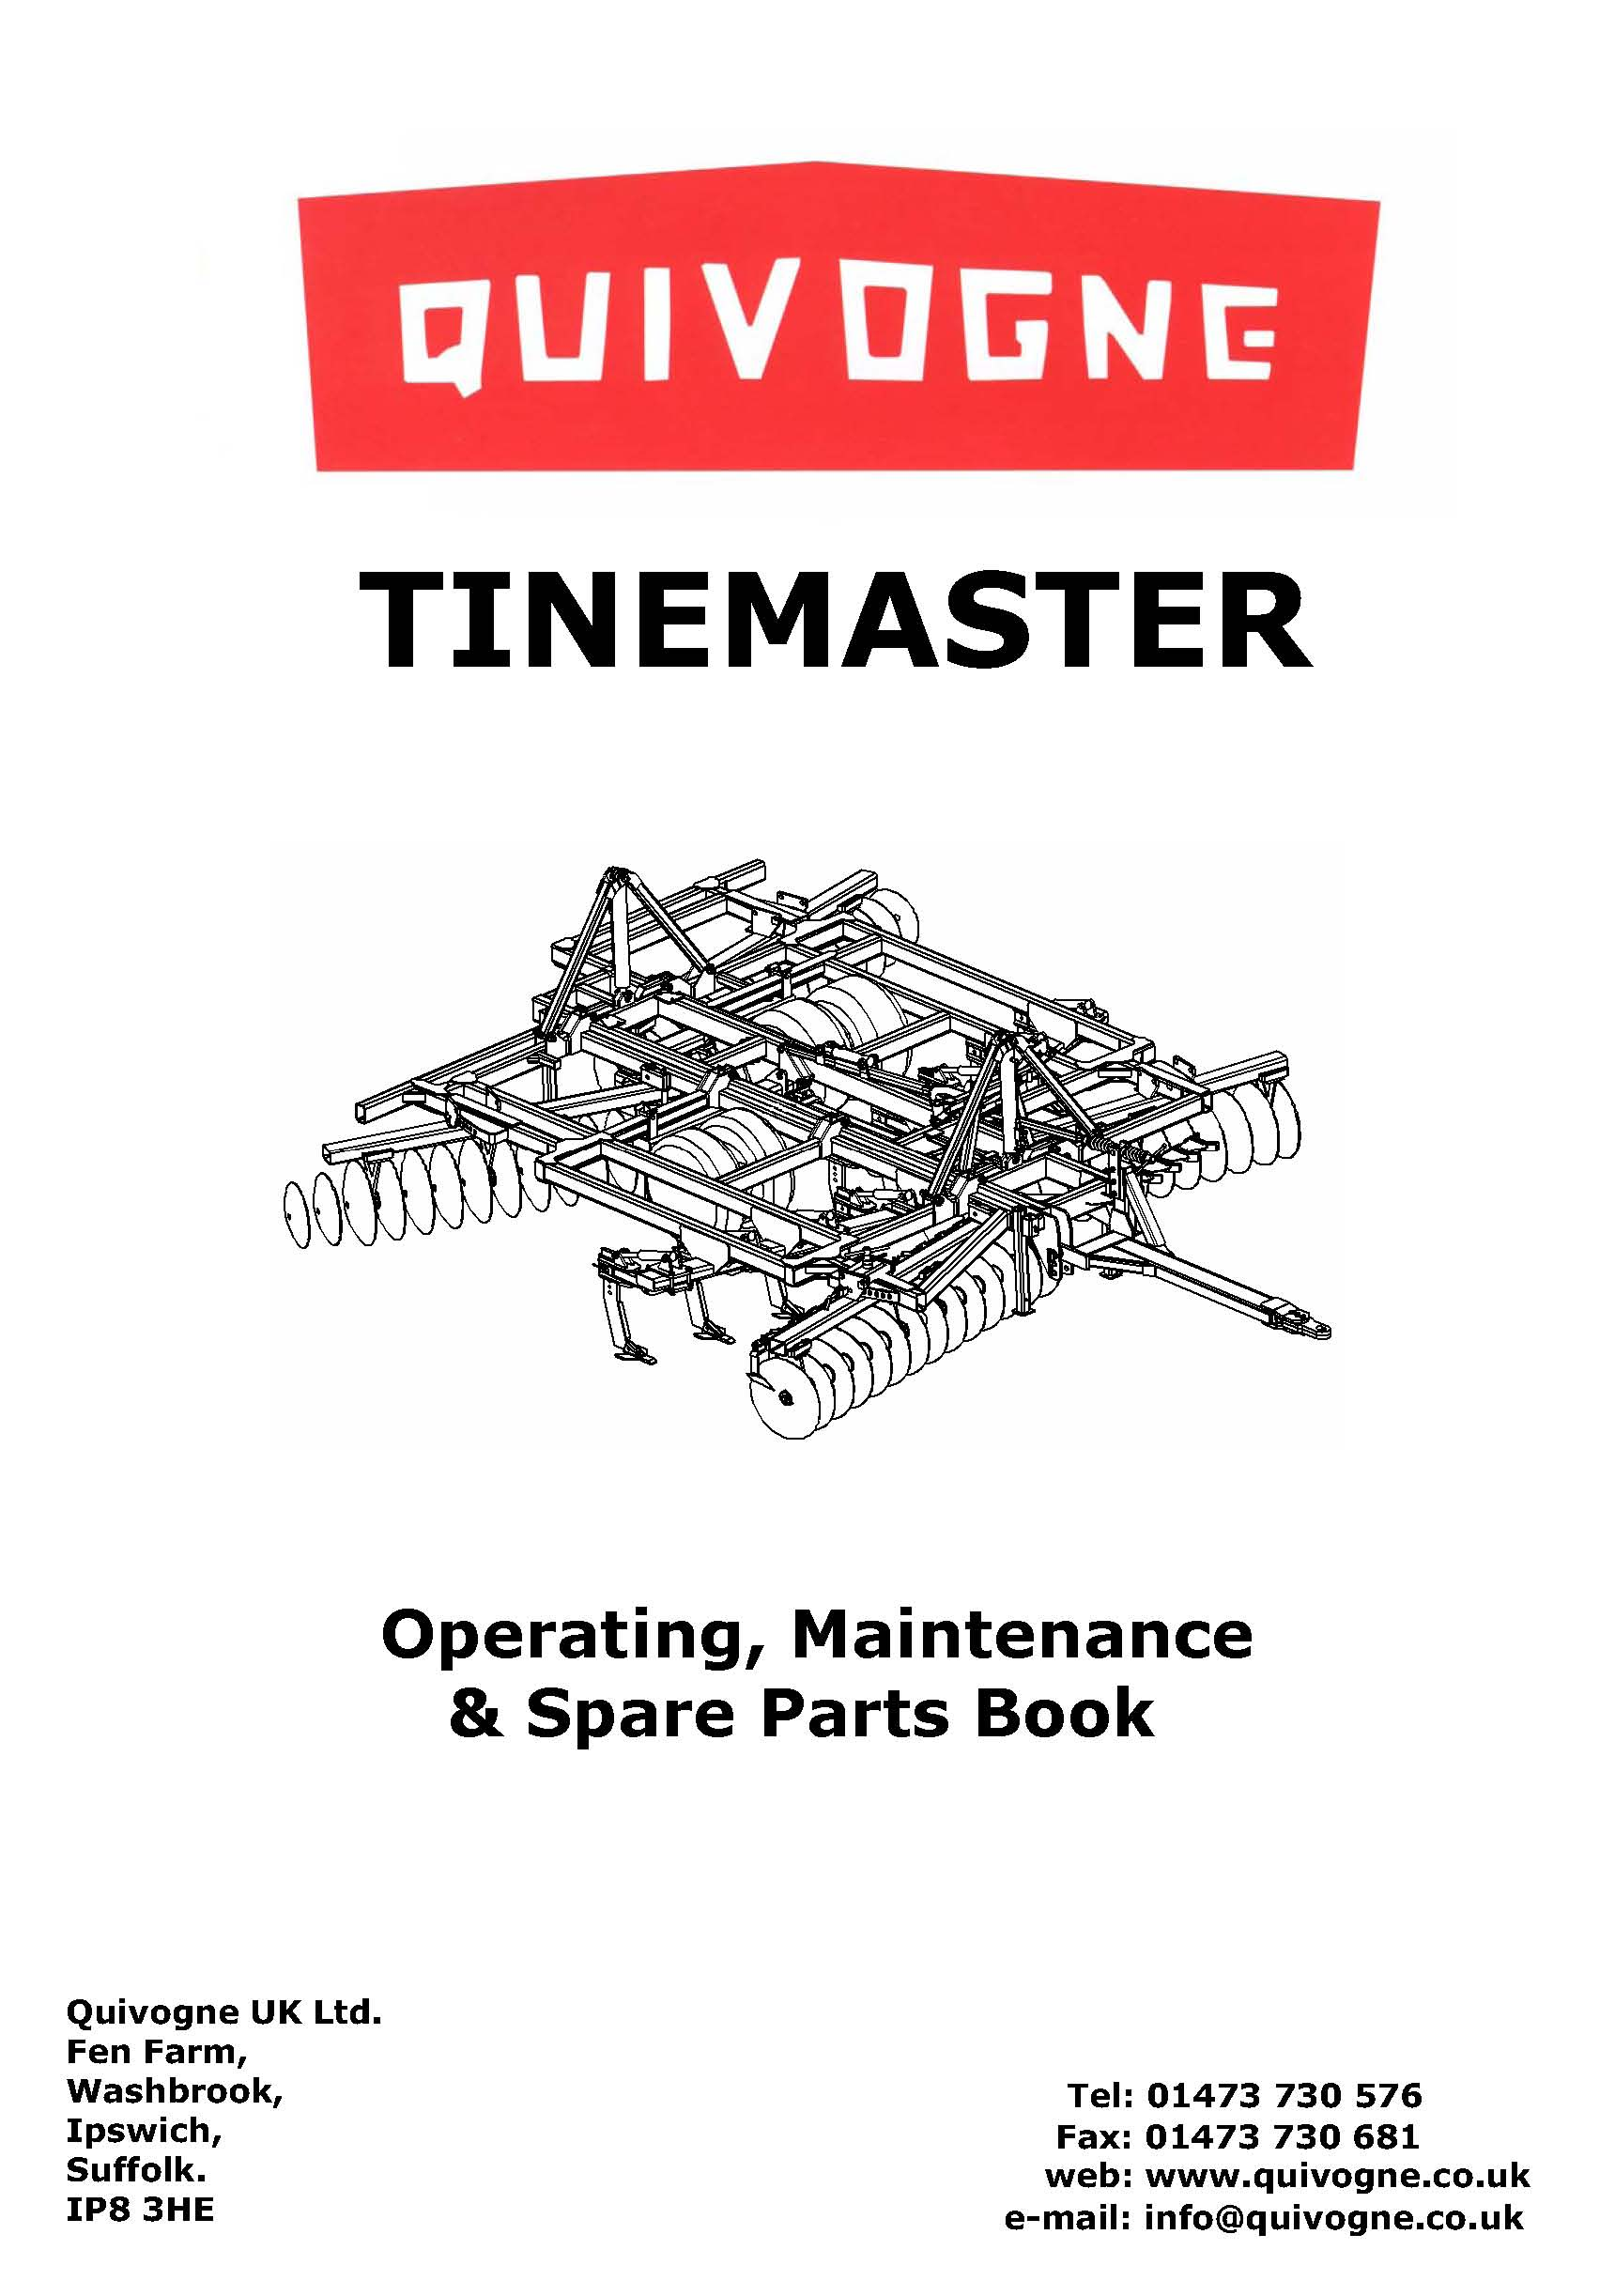 Tinemaster folding complete book